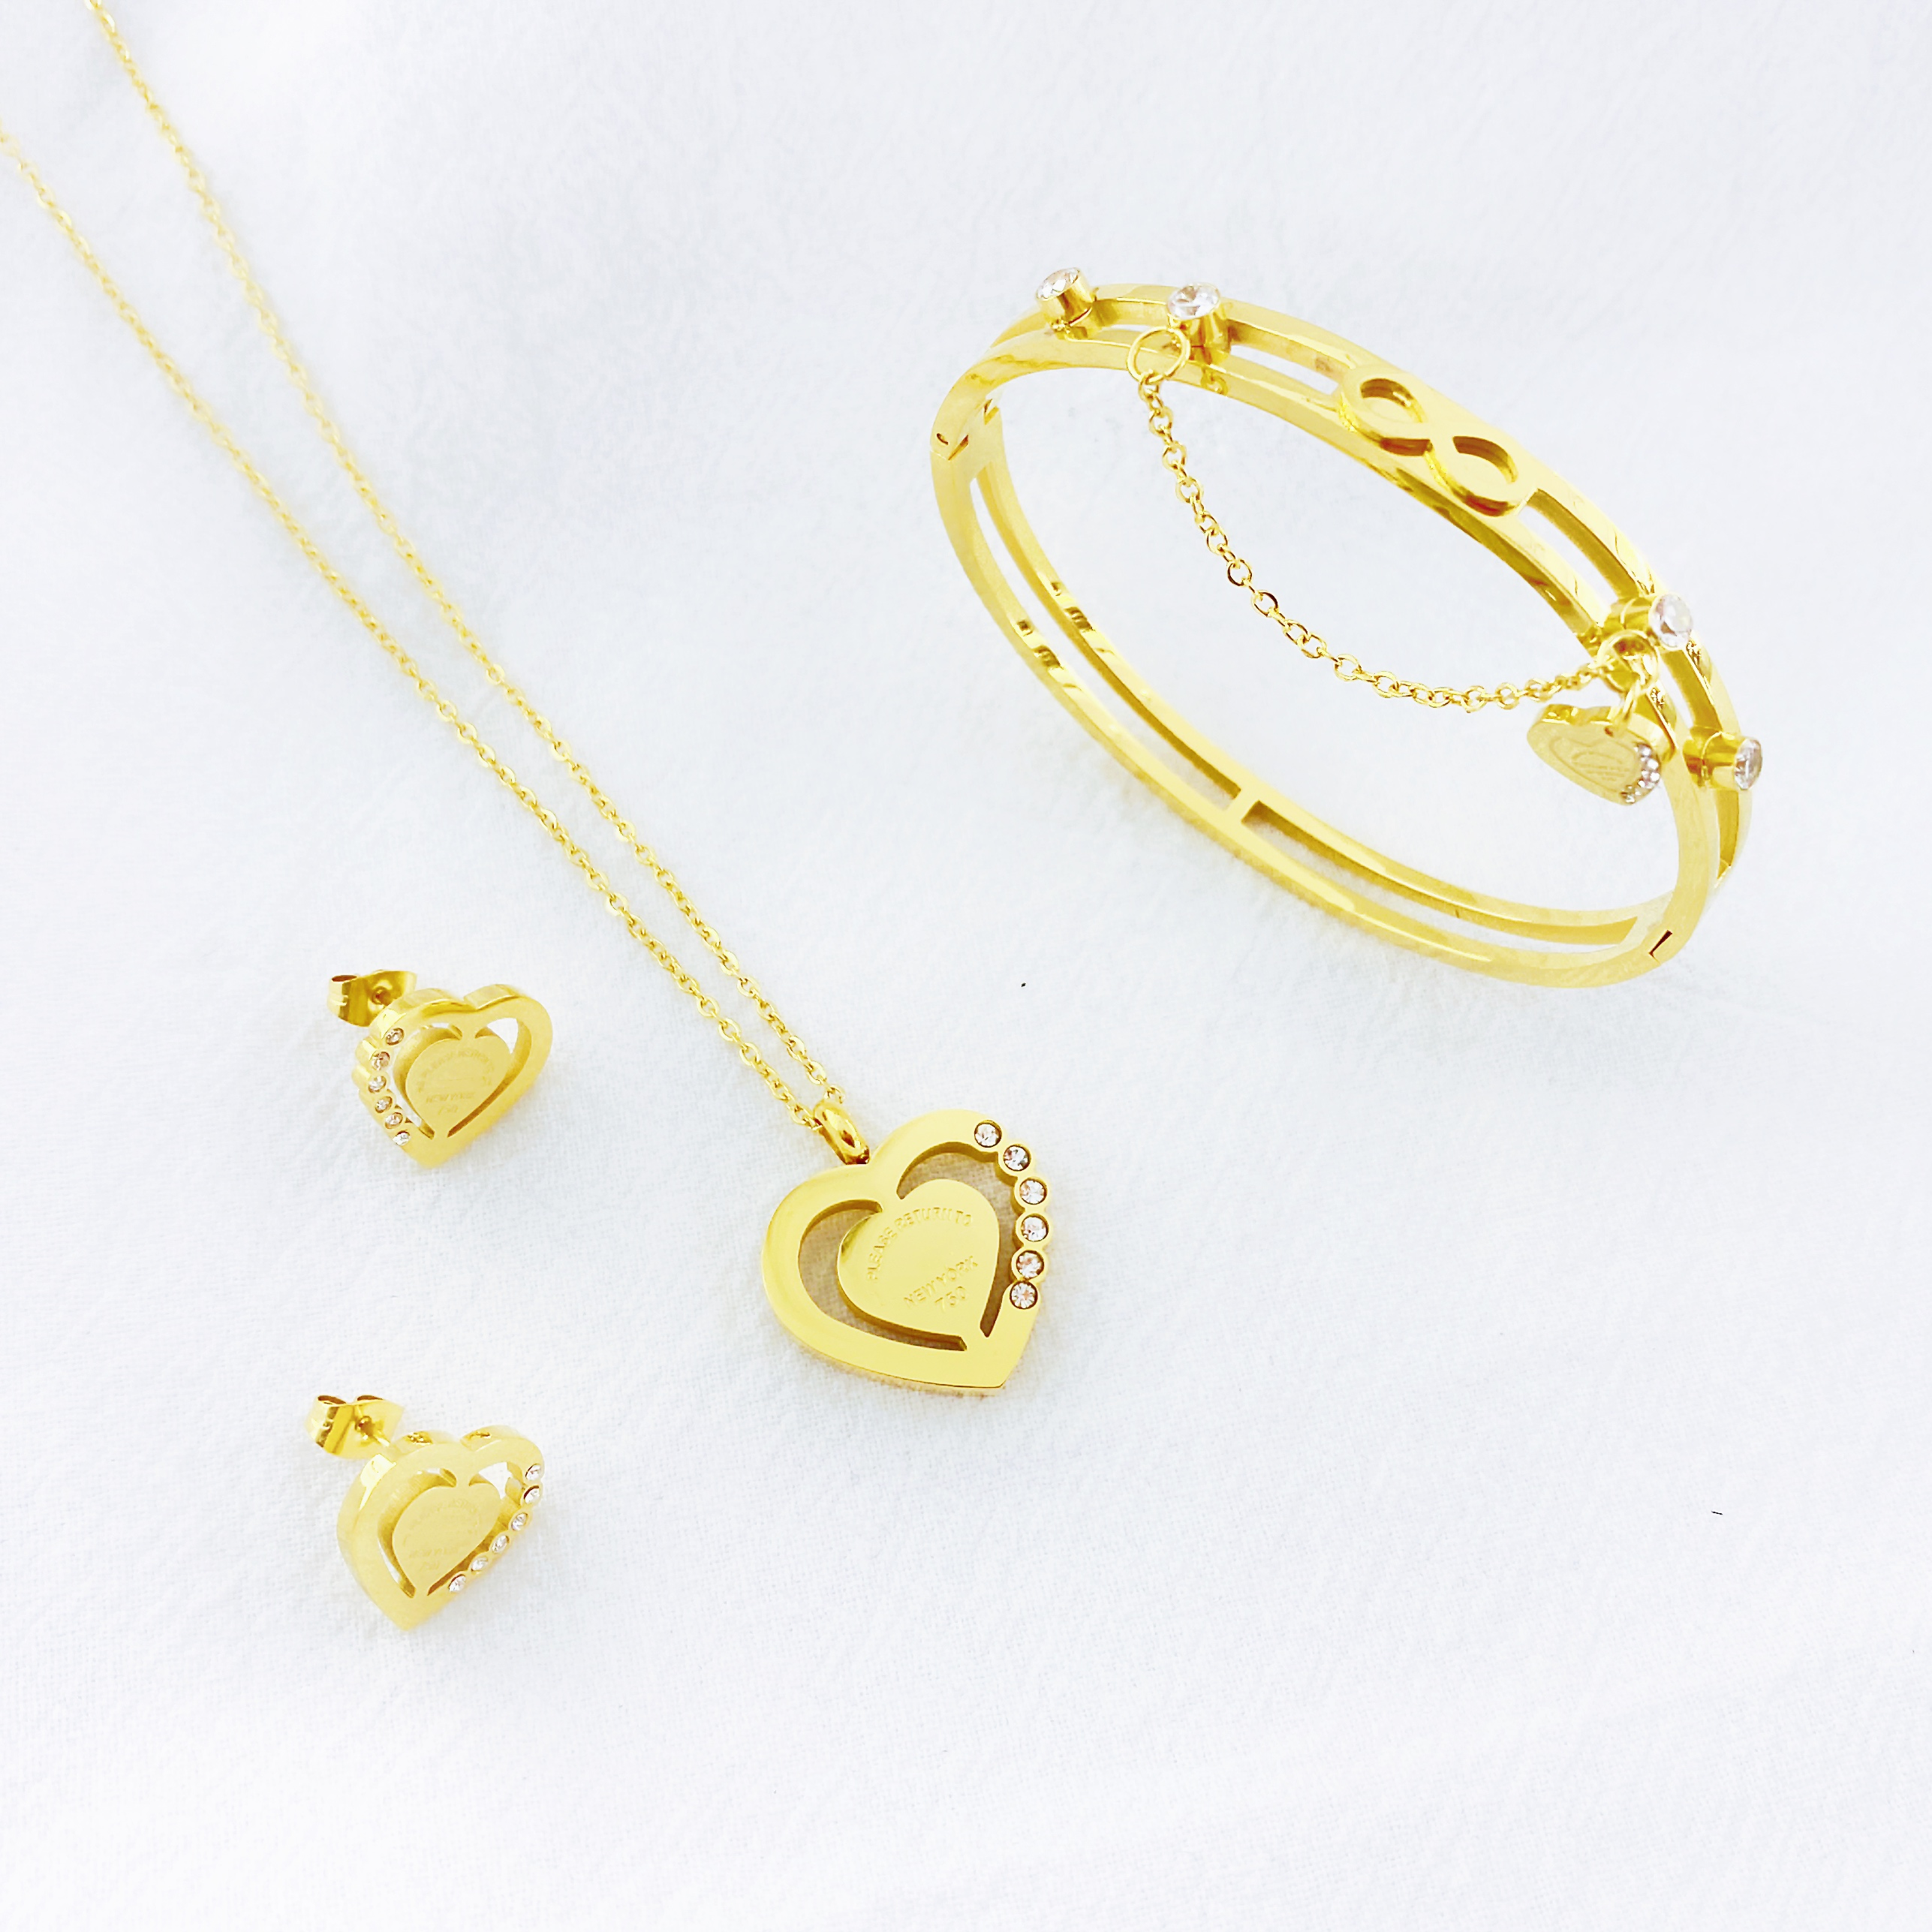 Euramerican fire enthusiastic type 8 word infinite love necklace earring bracelet 3sets for women party gifts Wholesale